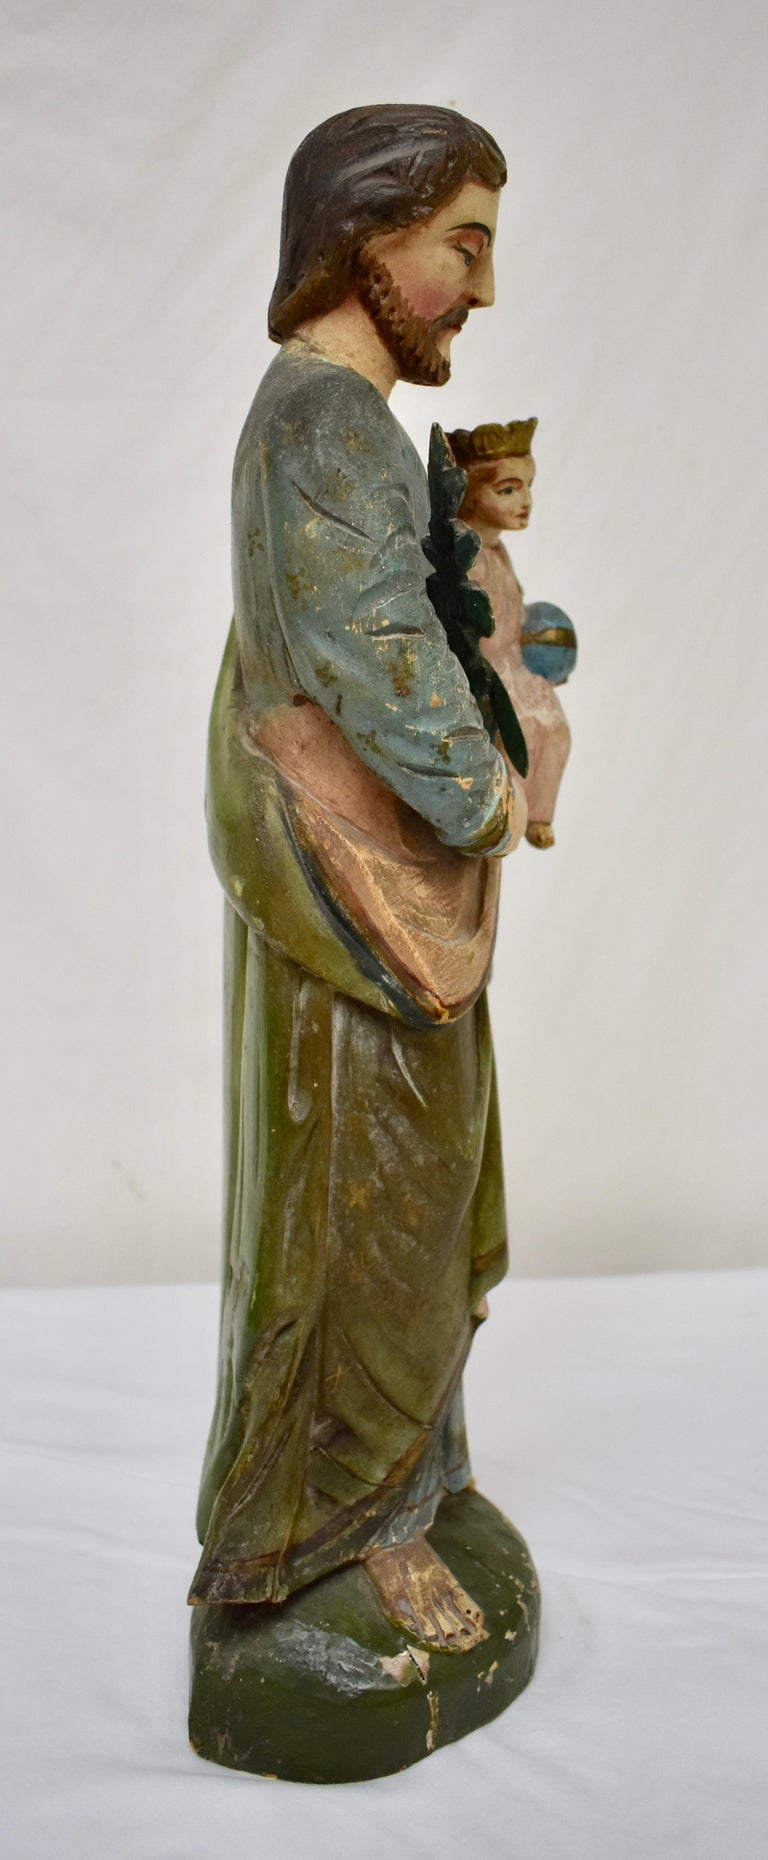 19th Century Hand Carved Wooden Sculpture of Saint Joseph with Baby Jesus For Sale